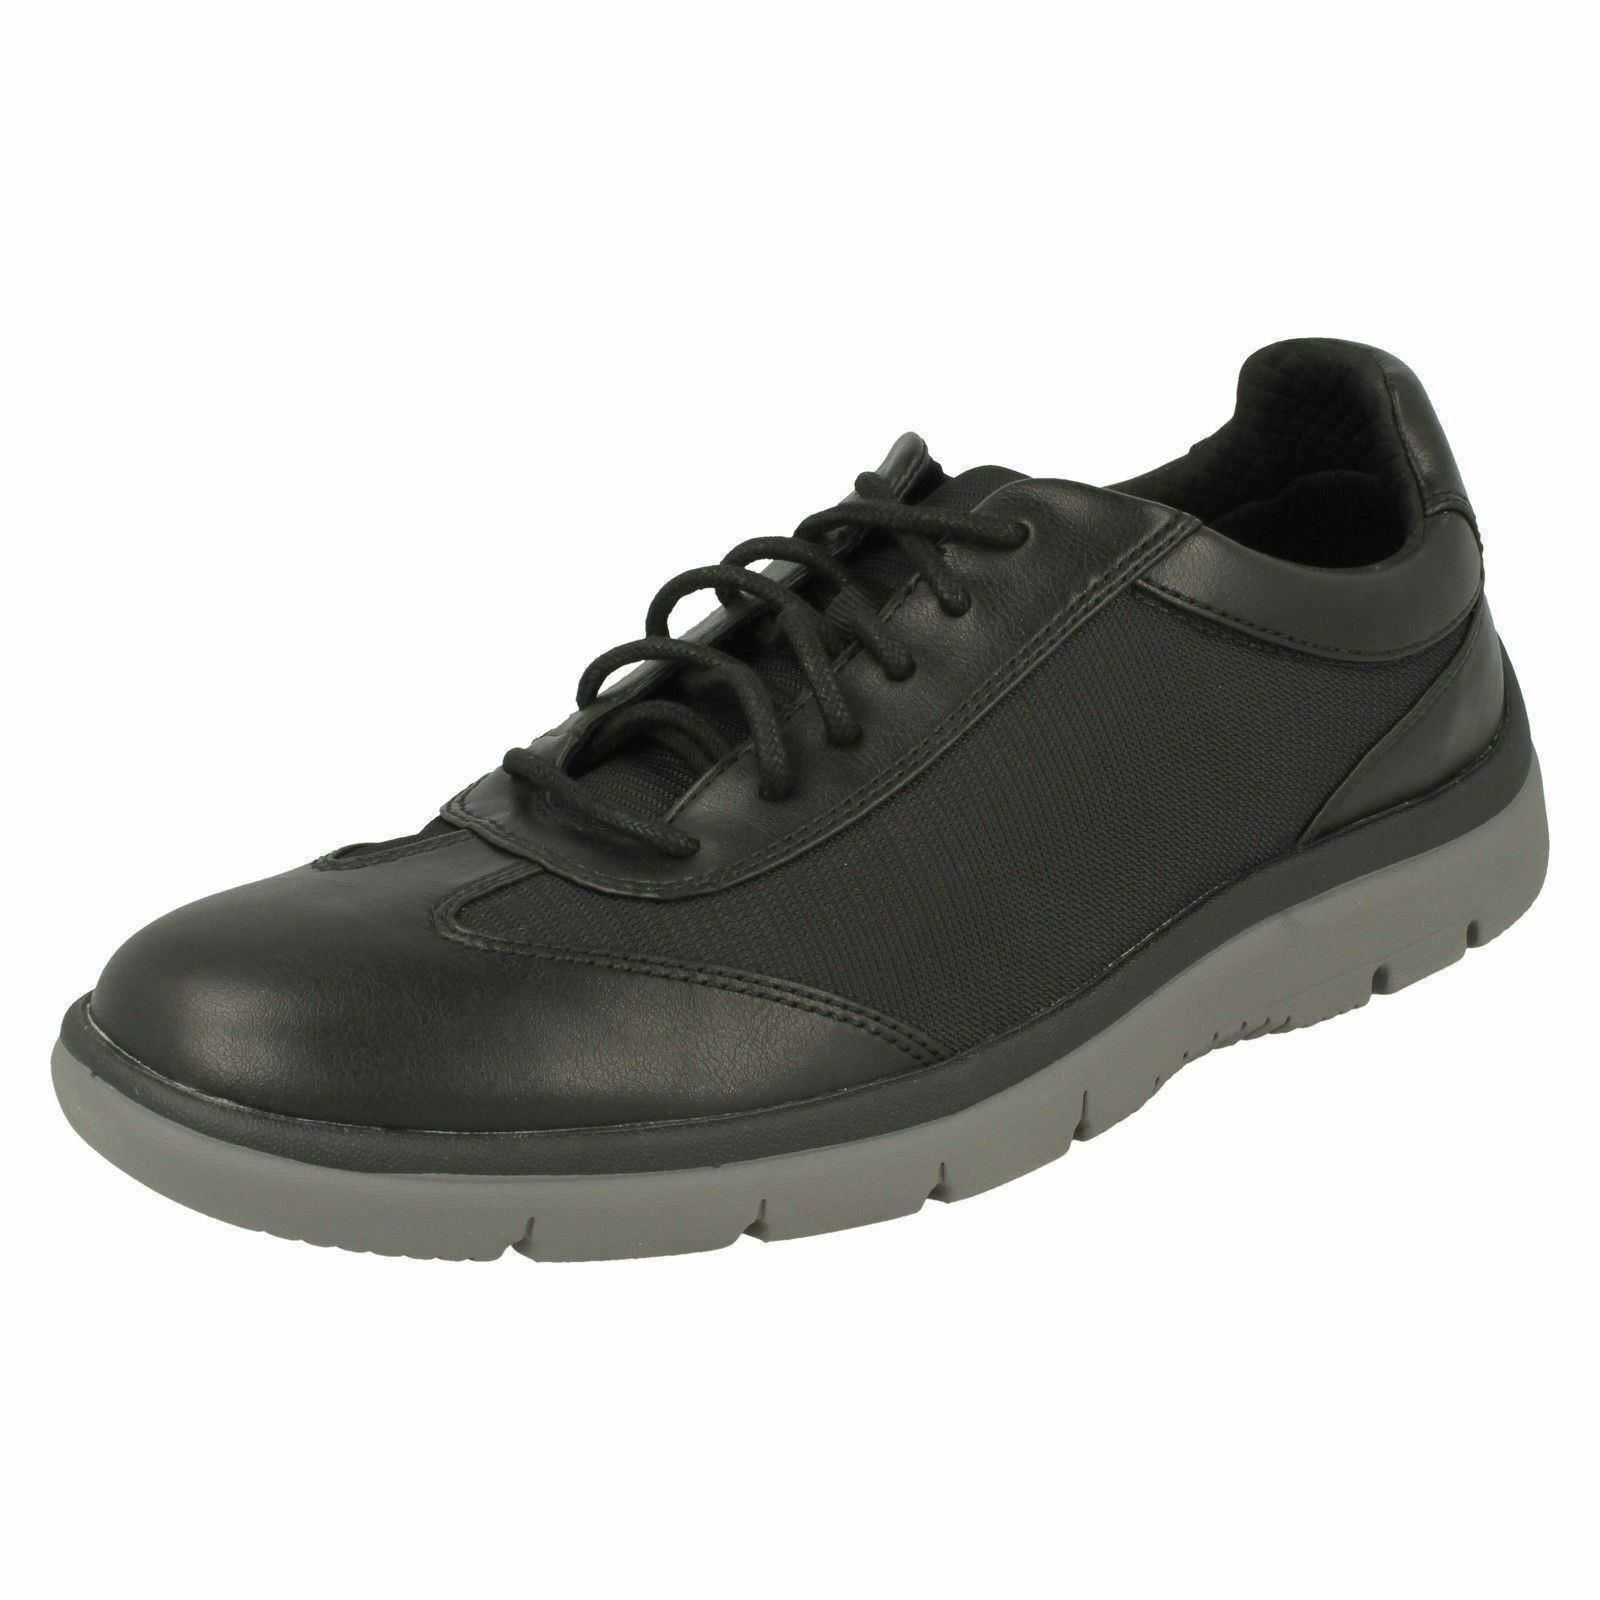 Herren Clarks Cloudsteppers Tunsil Grat Freizeit Schnürer Shoes